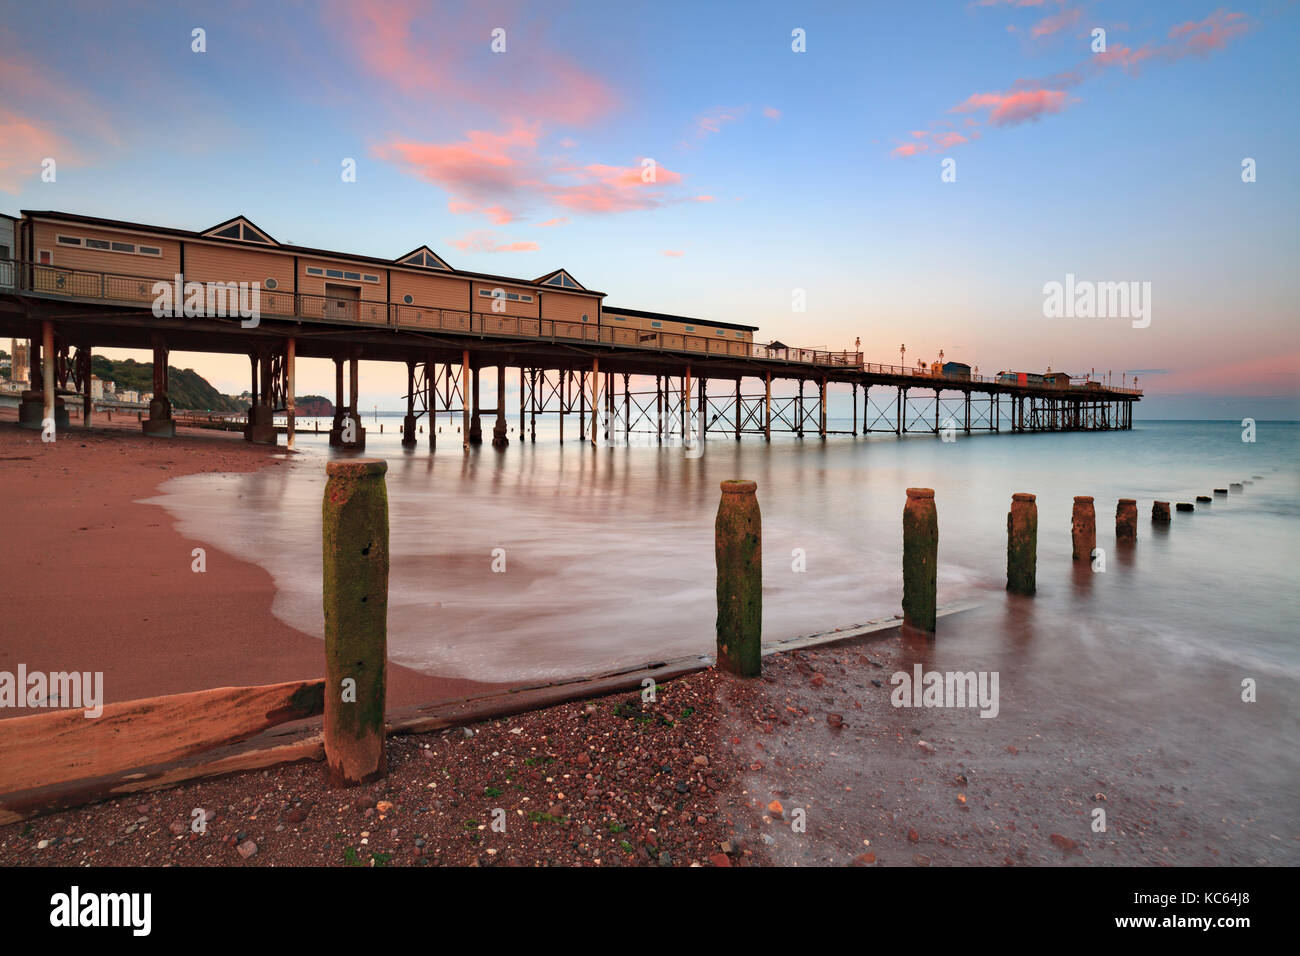 Teignmouth Pier at Sunset - Stock Image